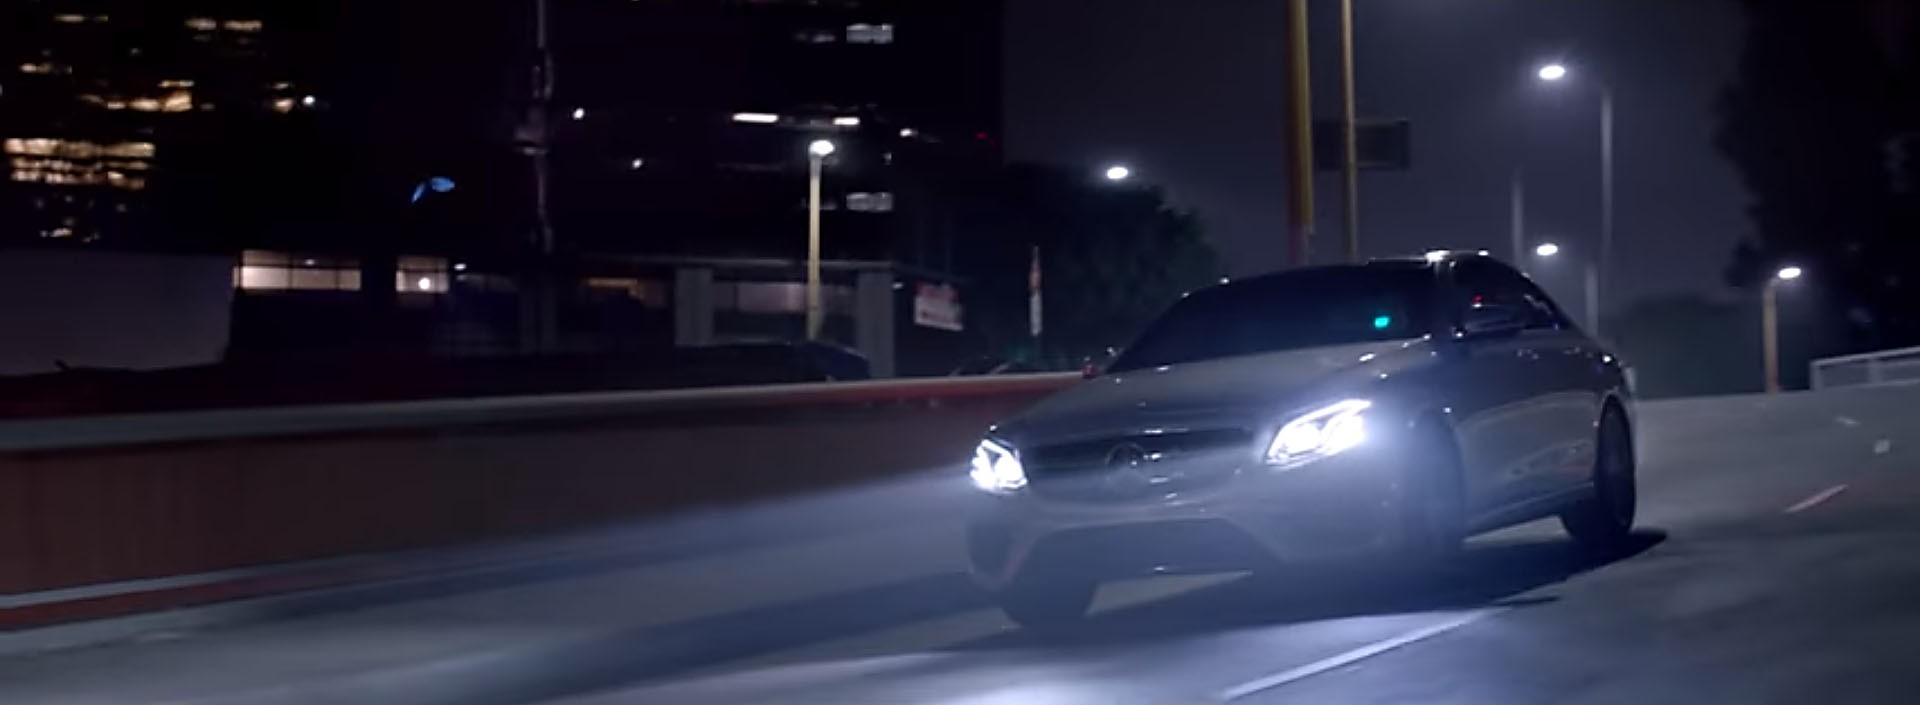 New mercedes benz e class commercial doesn 39 t make for New mercedes benz commercial